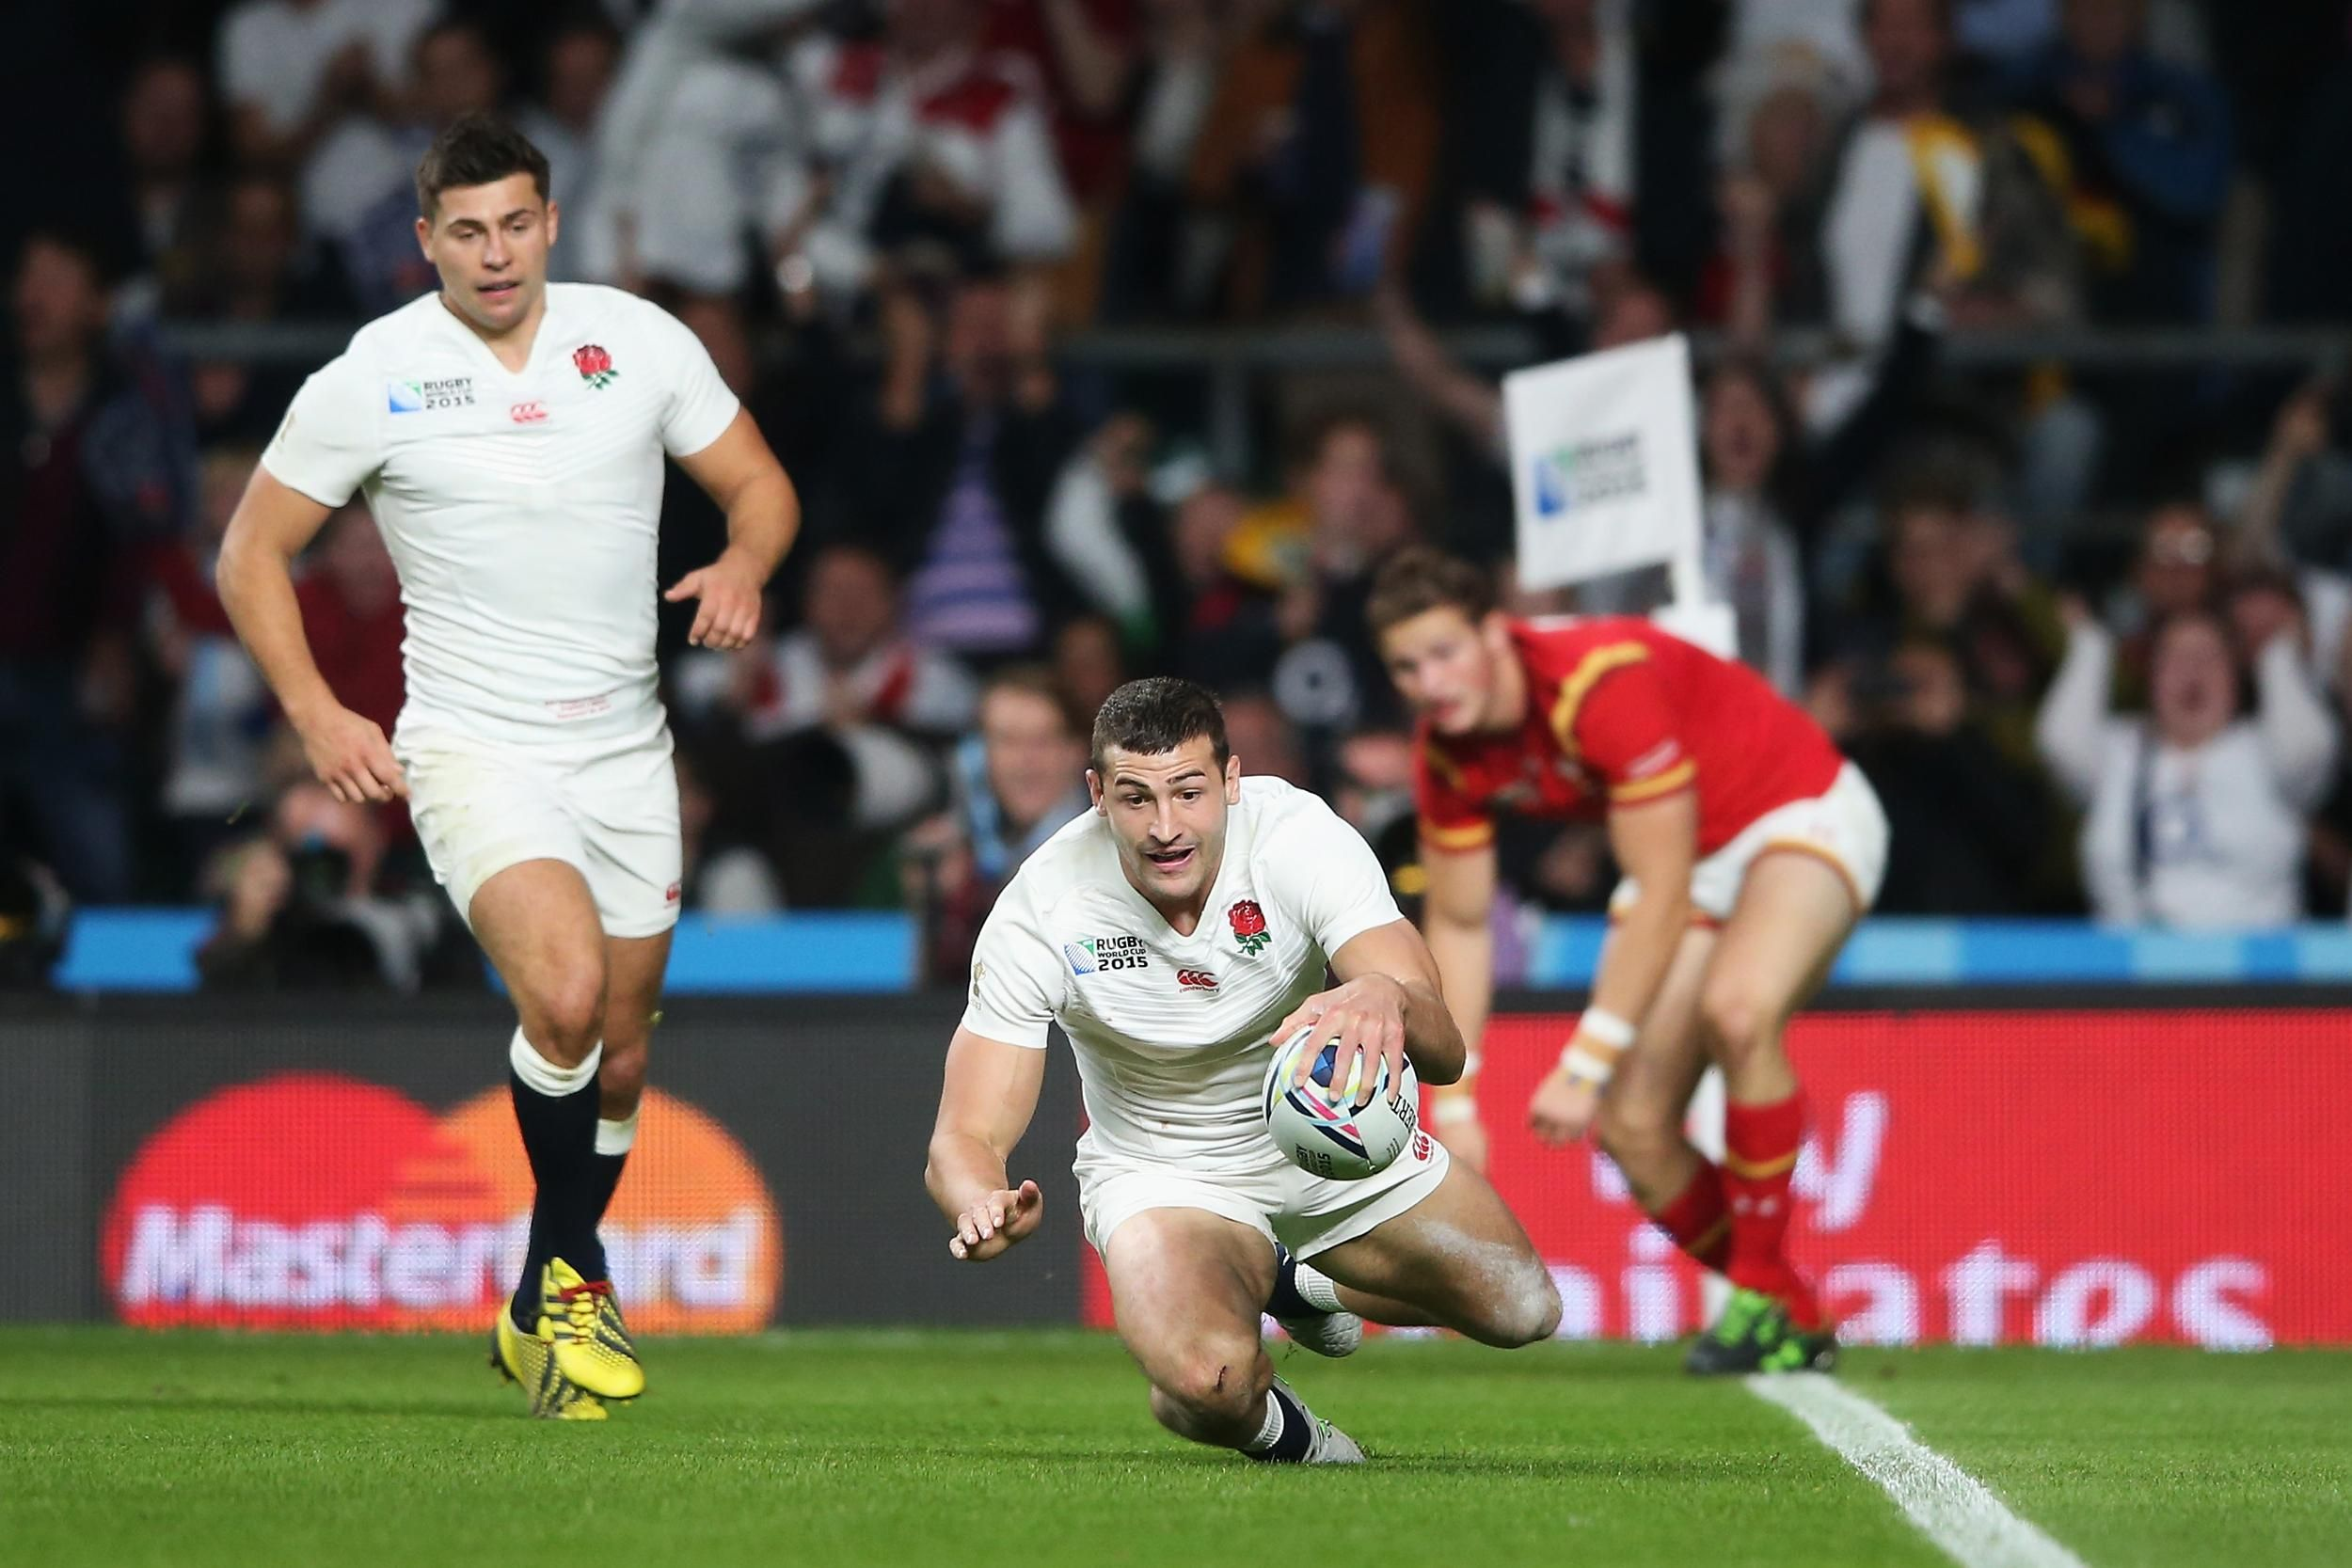 JONNY BE GOOD: England's Jonny May dives over the line to score's the opening try against Wales